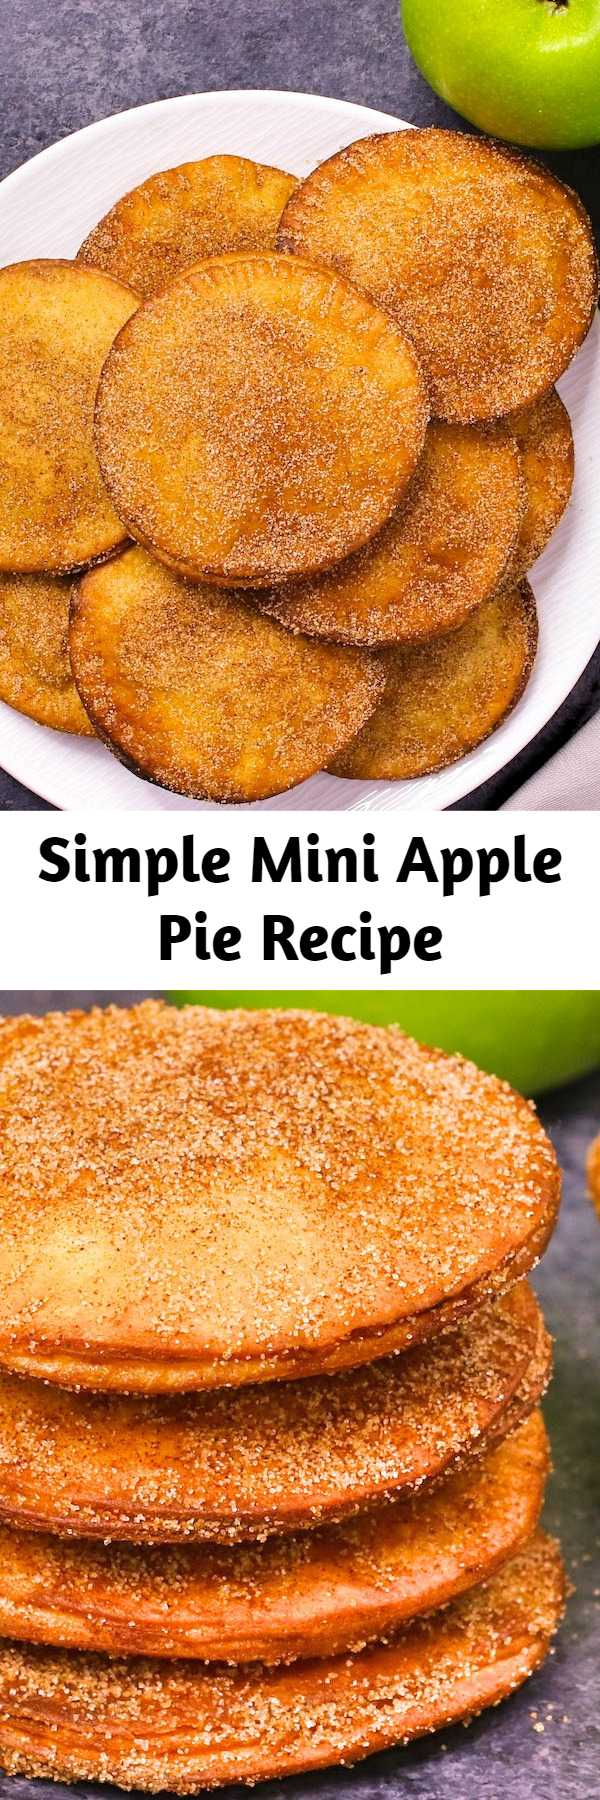 Simple Mini Apple Pie Recipe - Mini Apple Pies have sweet and soft filing with crispy pie on the outside. It's simple to make and takes less than 20 minutes. It's one of my favorite dessert recipes.